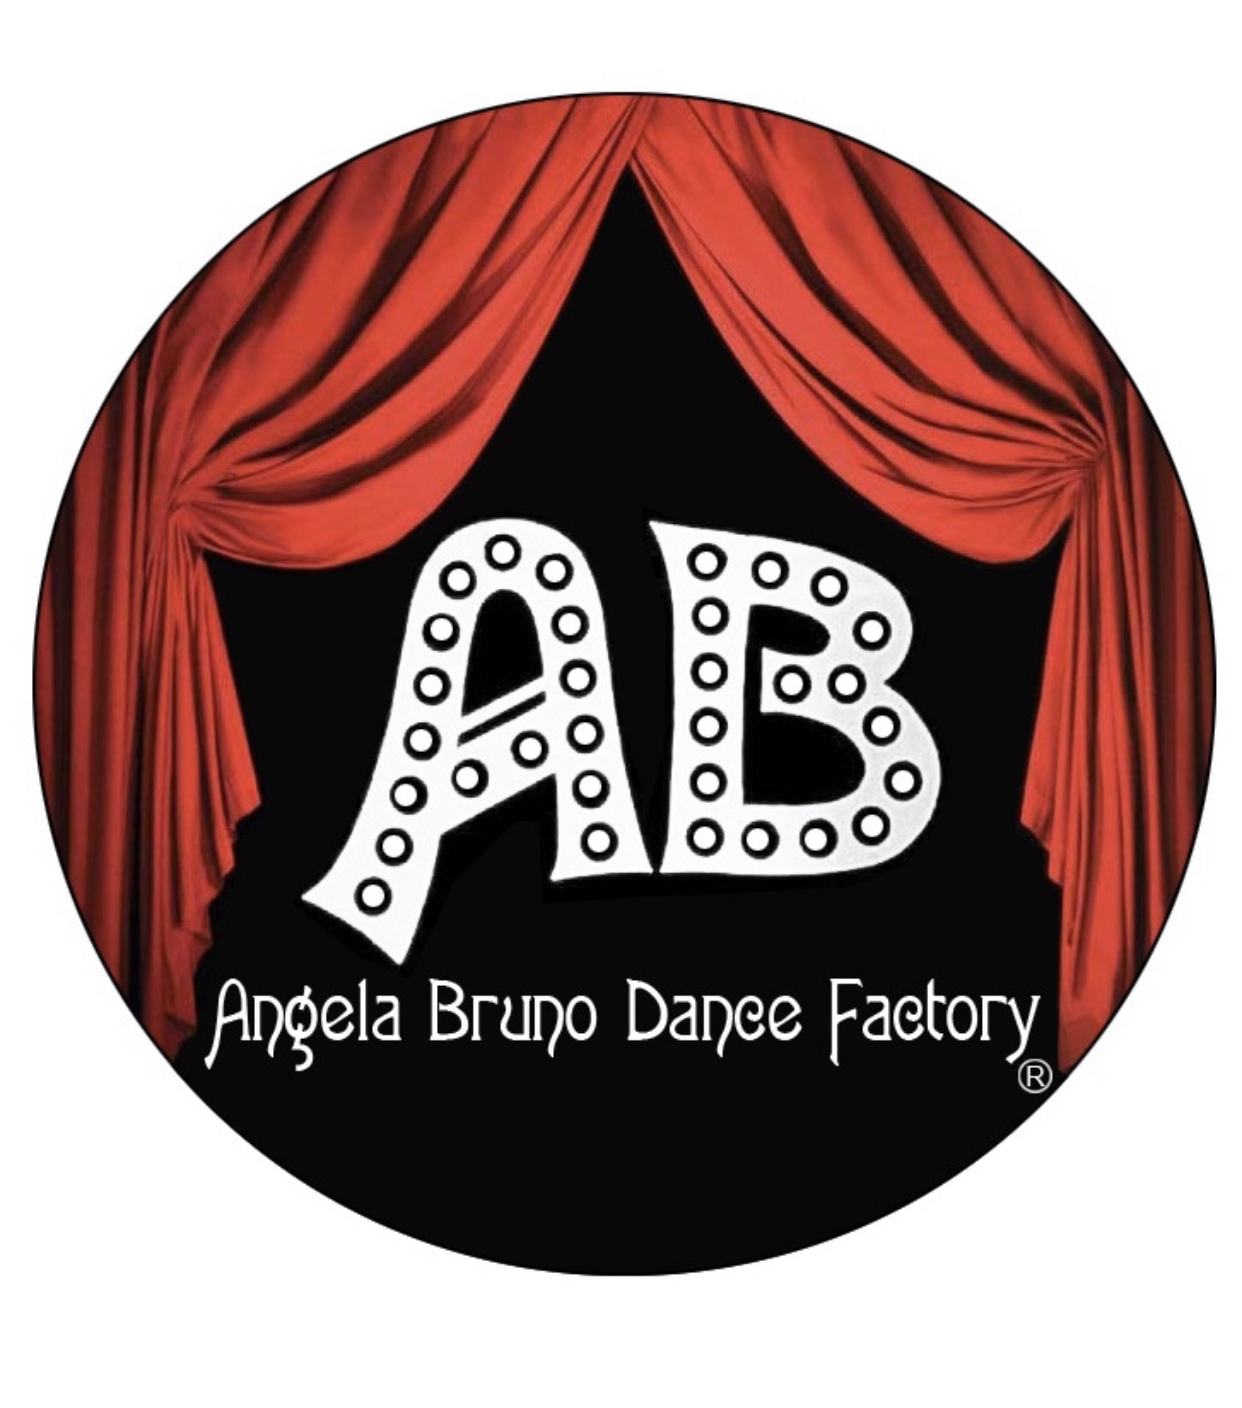 Angela Bruno Dance Factory